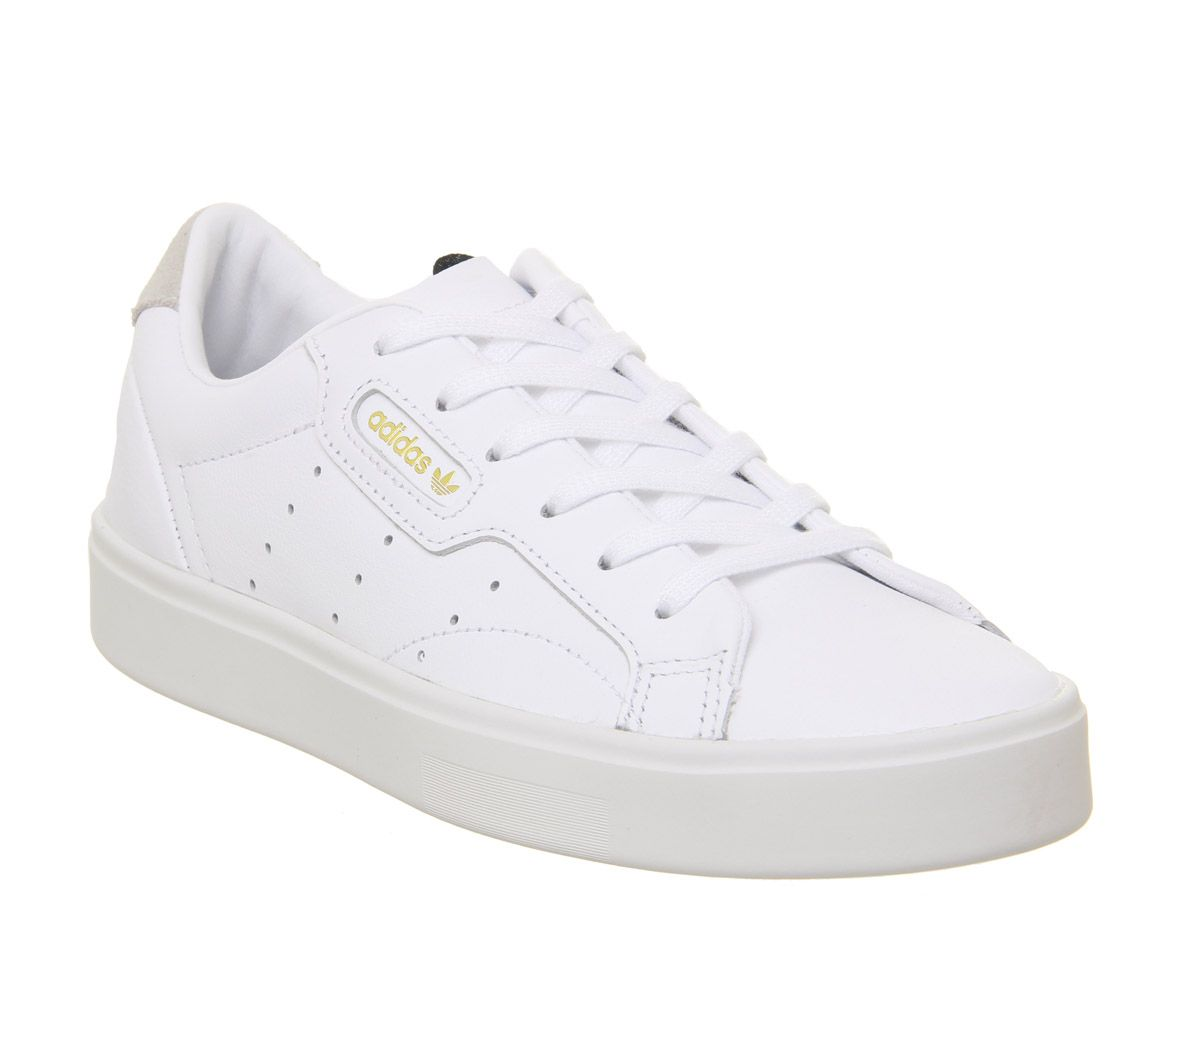 7e40622d adidas Sleek Trainers White White Crystal White - Hers trainers